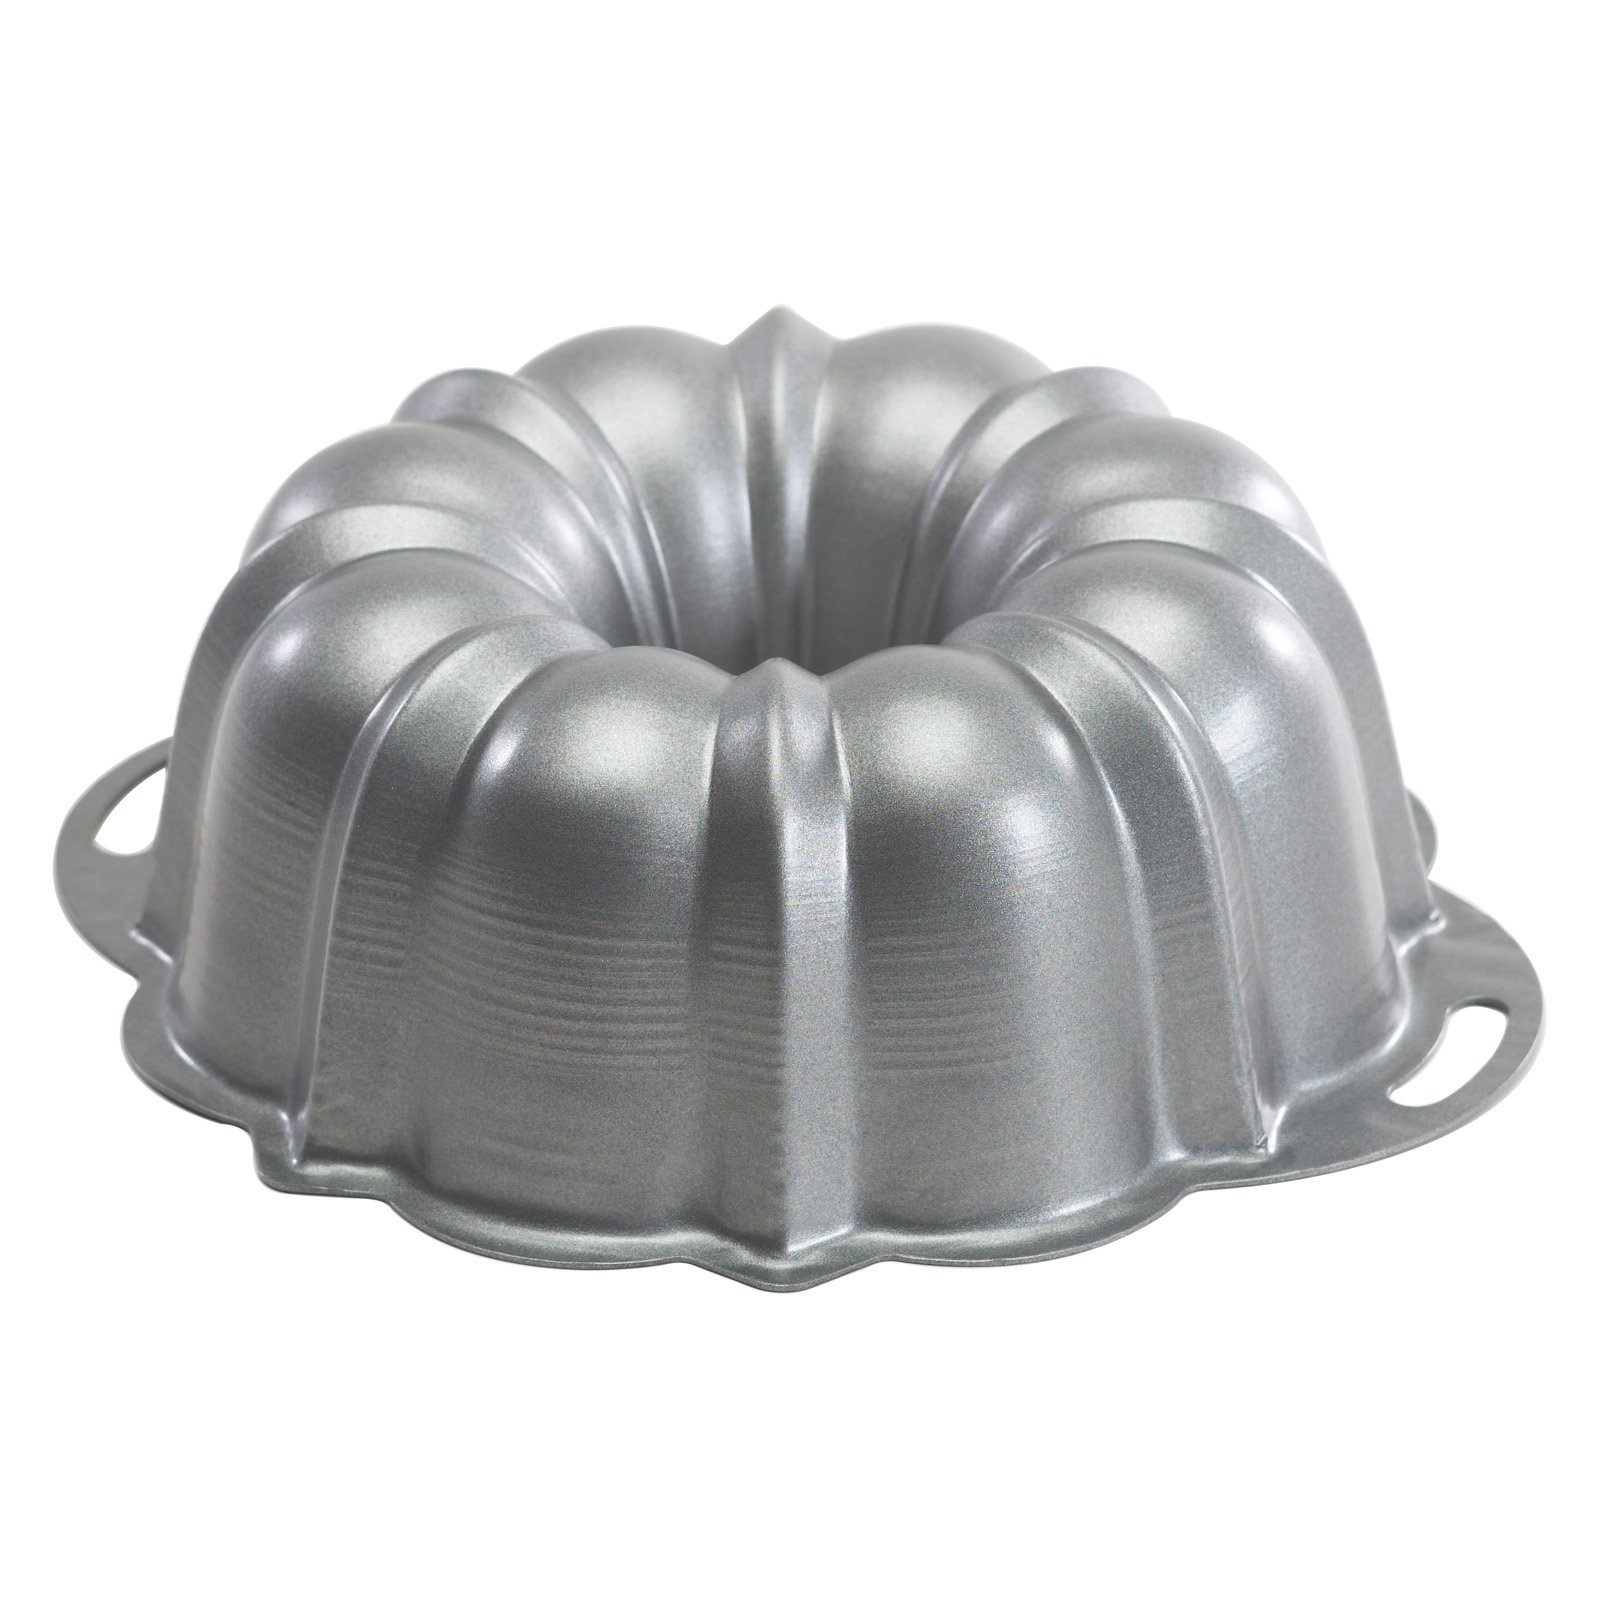 Nordic Ware Pro Form Bakeware Nonstick Heavyweight Aluminum Bundt Pan